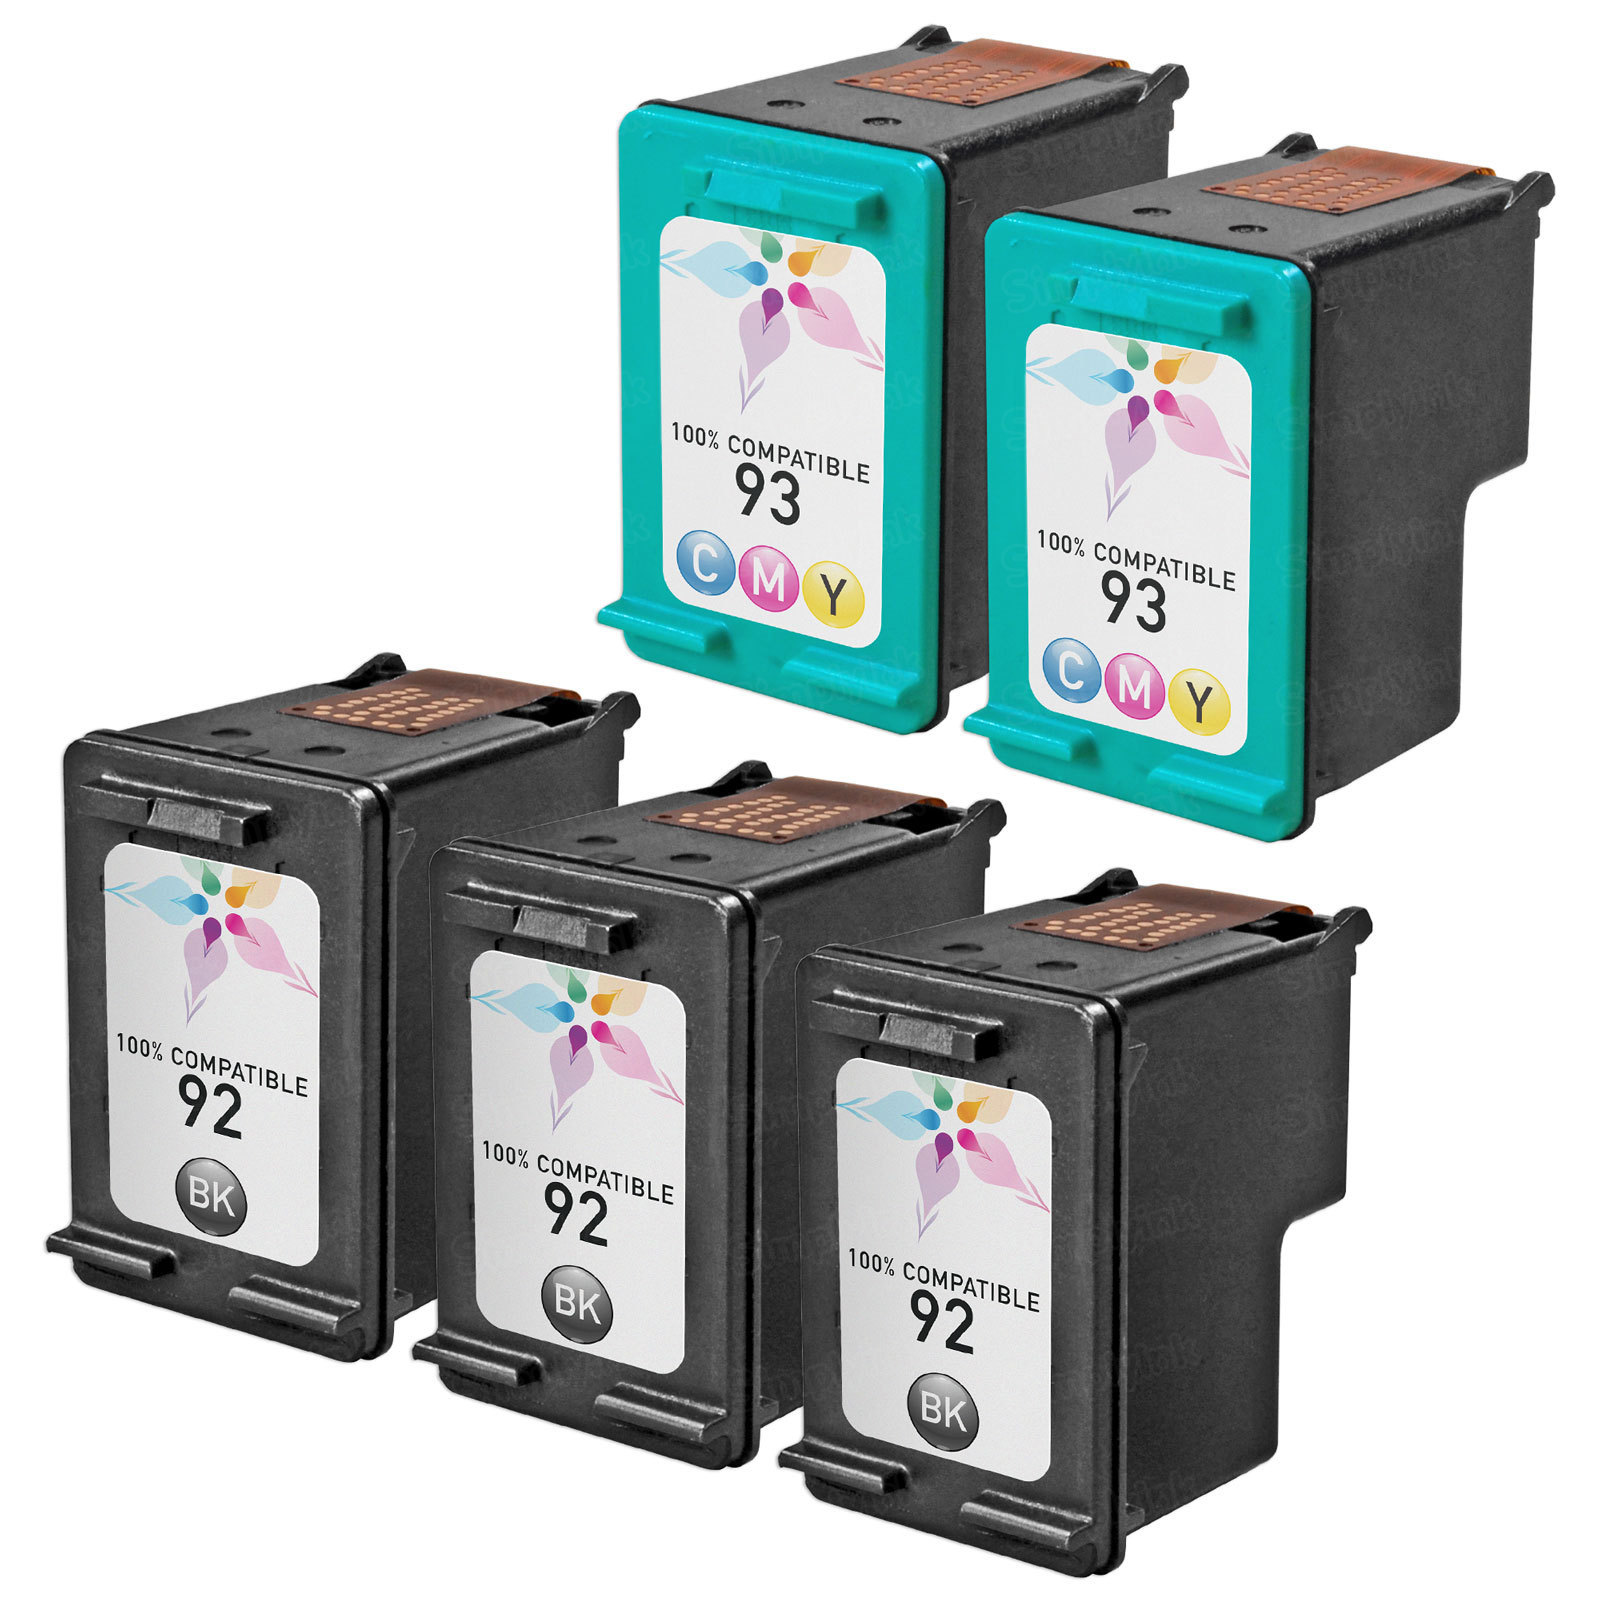 Remanufactured Bulk Set of 5 Ink Cartridges to Replace HP 92 & HP 93 (3 BK, 2 CLR)